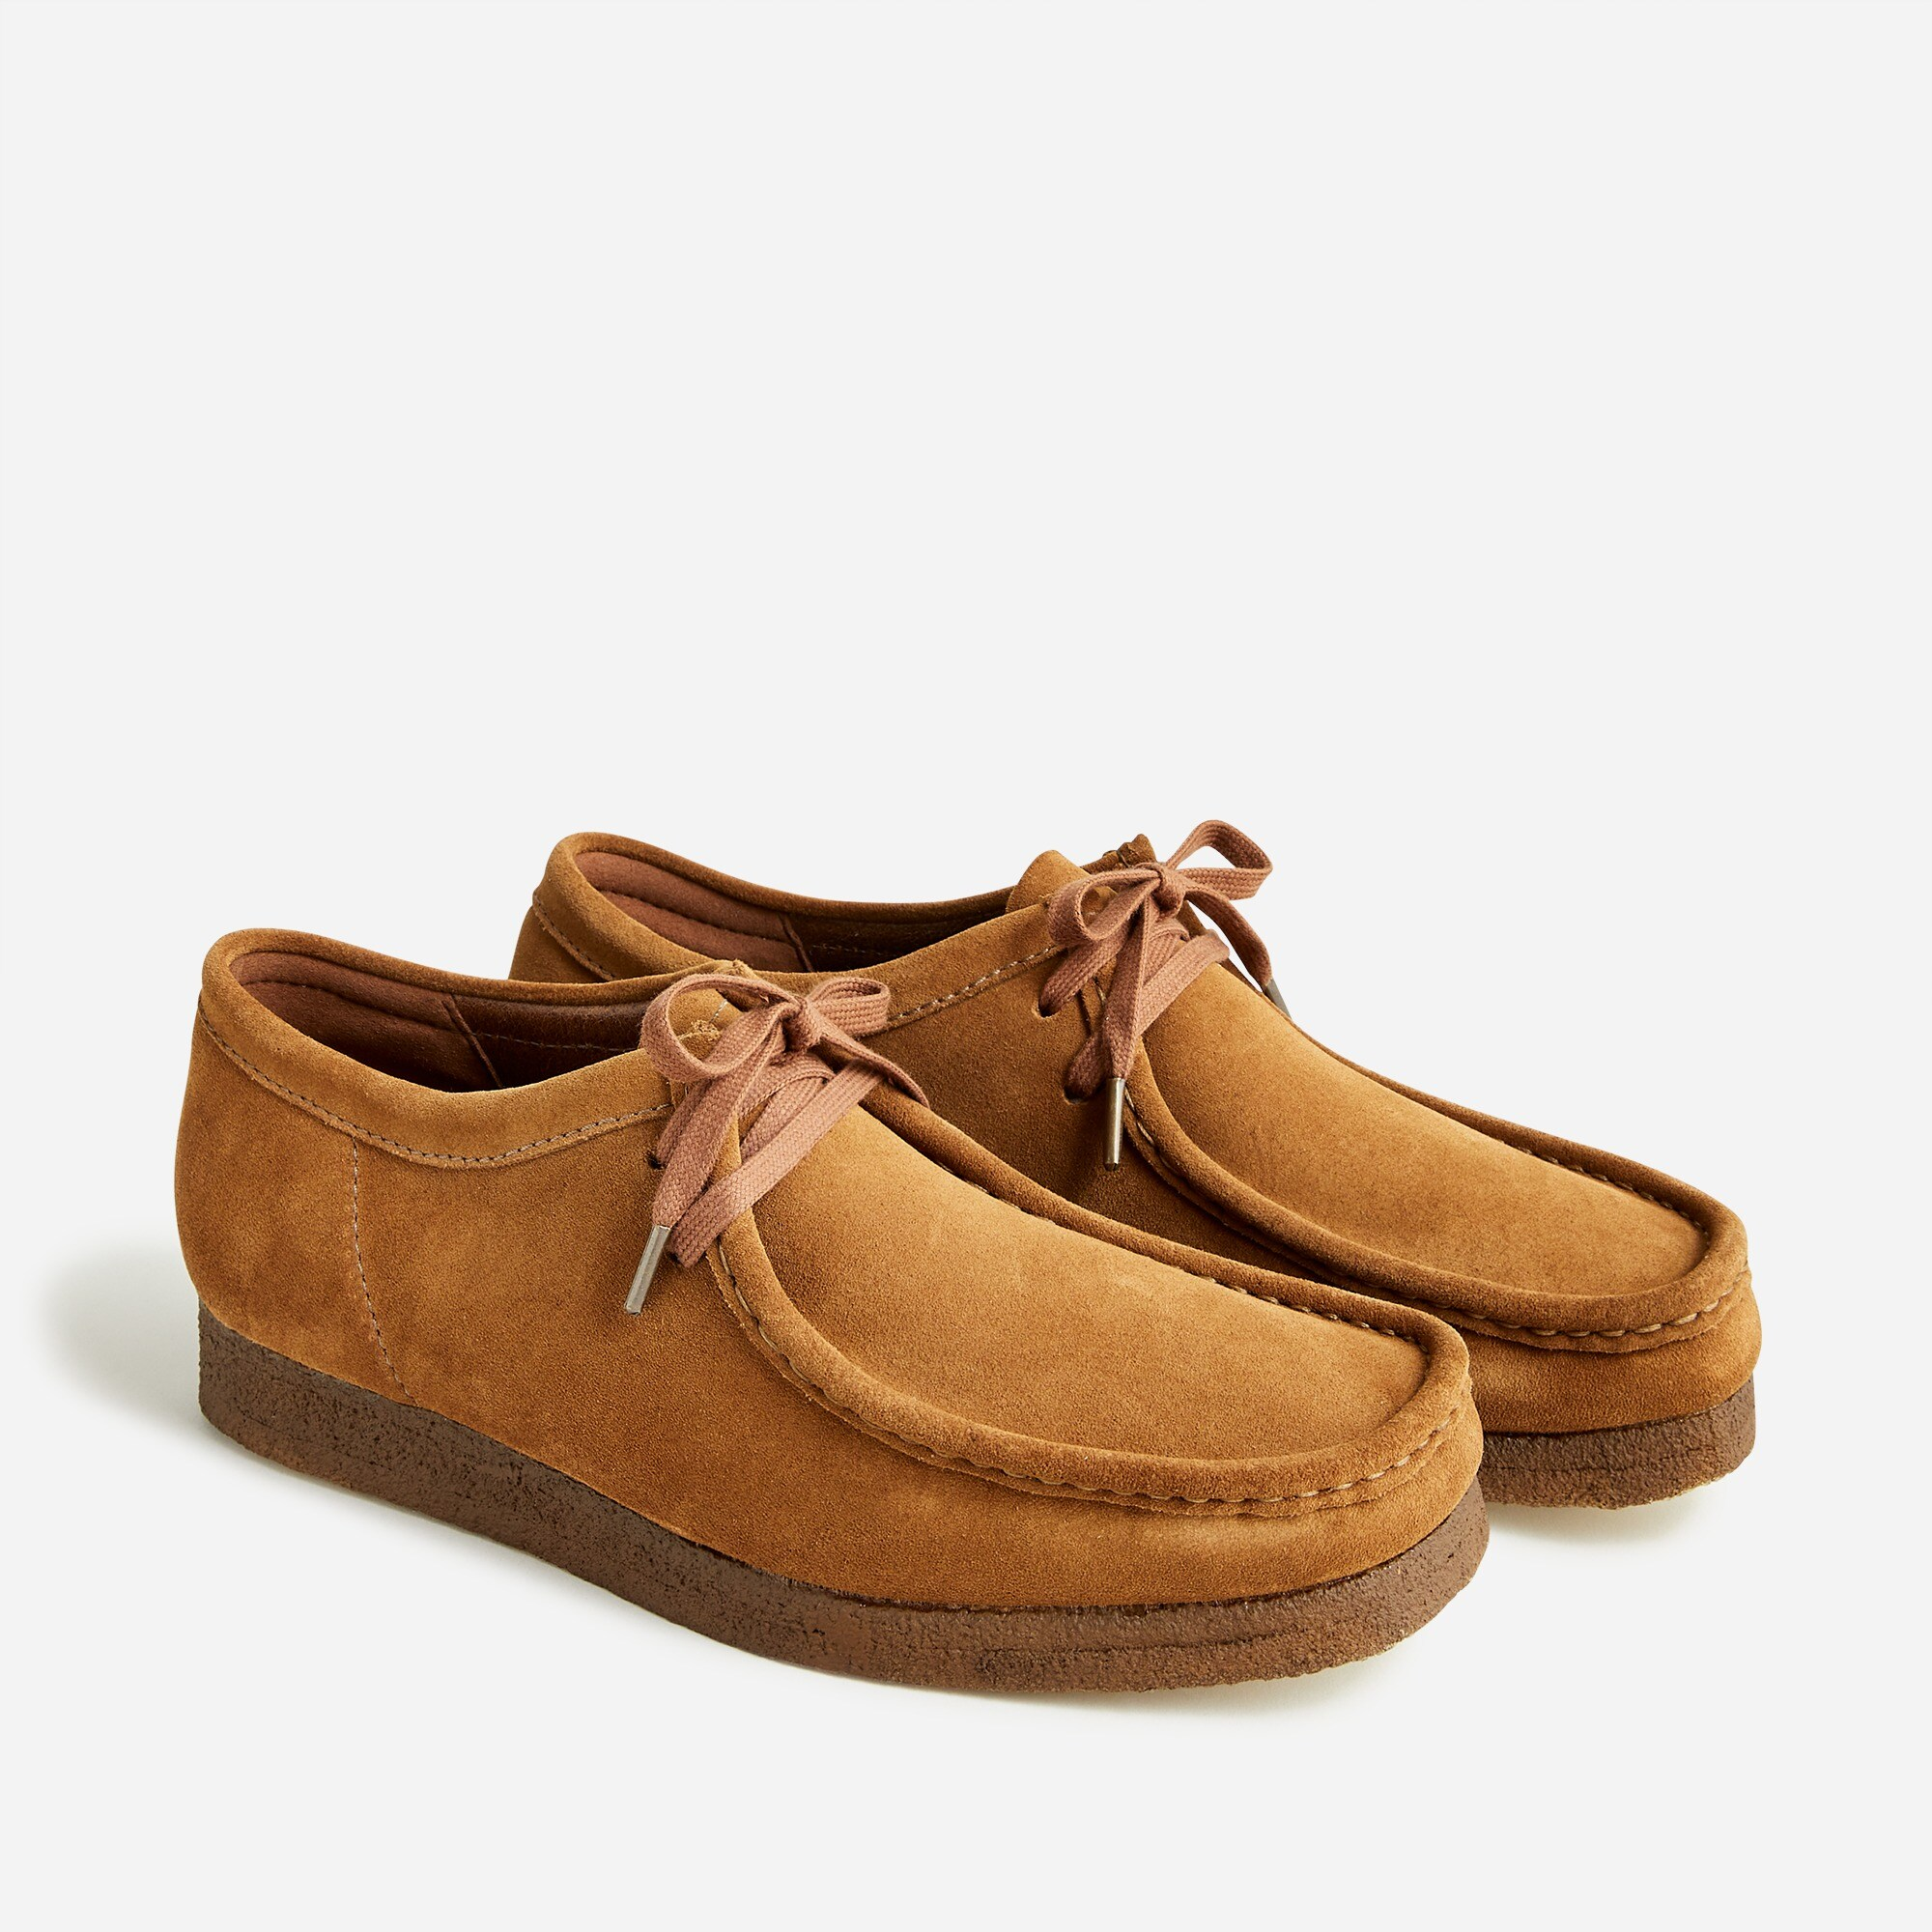 mens Clarks® Originals Wallabee® shoes in suede